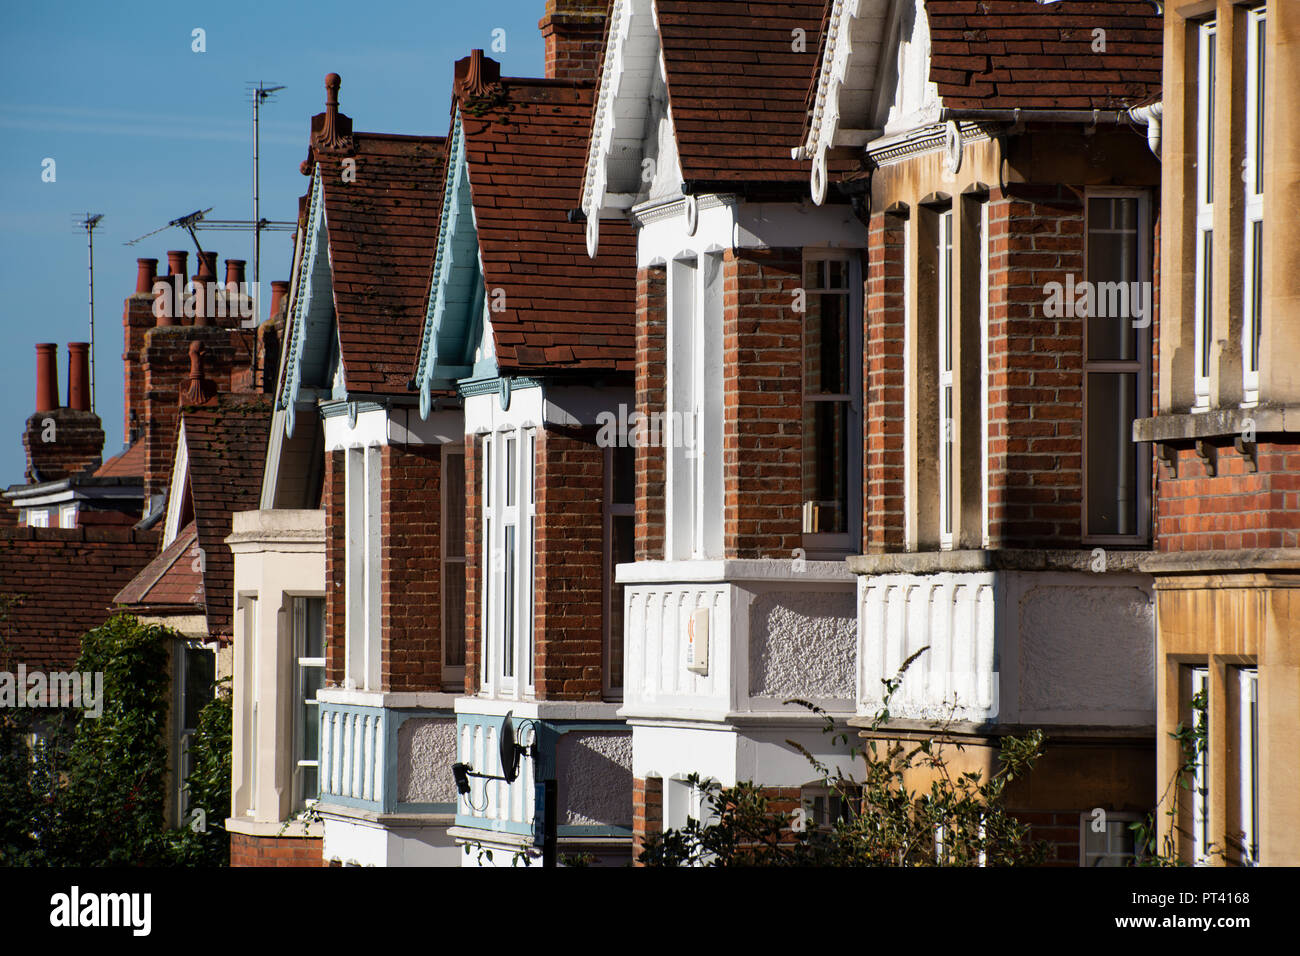 Terraced houses in East Oxford, UK - Stock Image